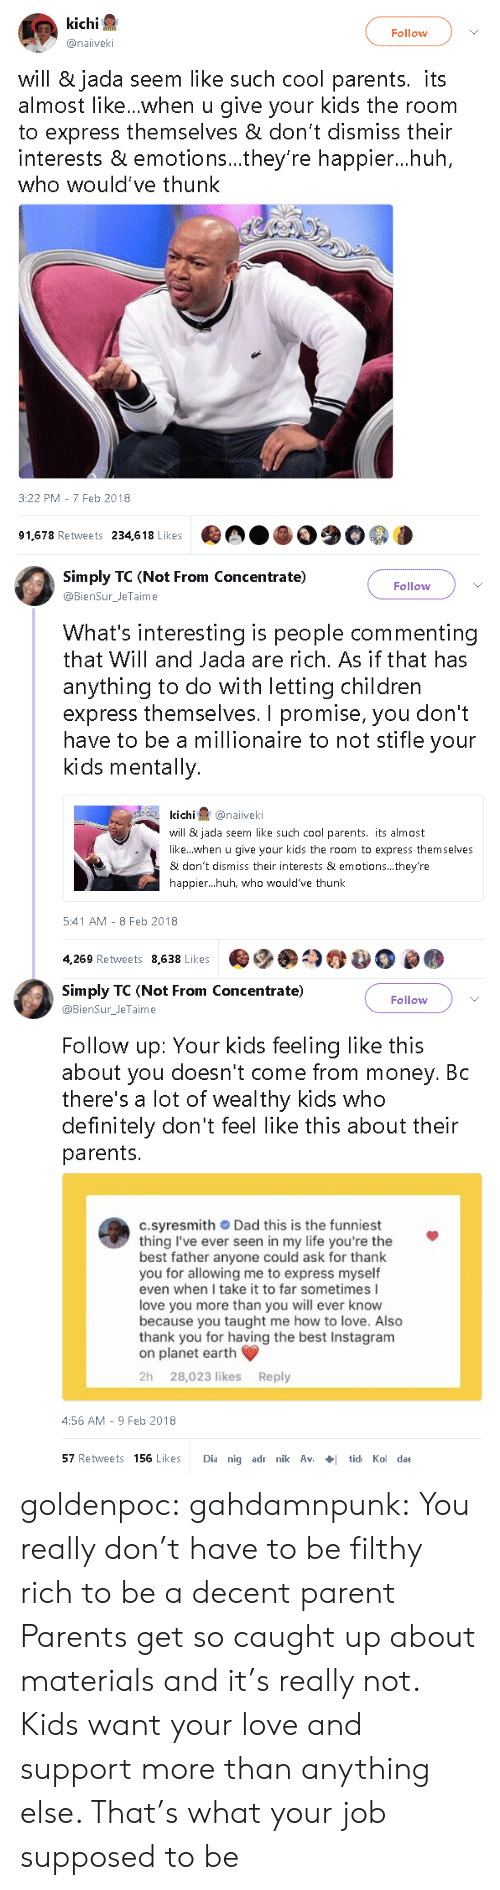 thunk: kichi  Follow  @naiiveki  will & jada seem like such cool parents. its  almost like...when u give your kids the room  to express themselves & don't dismiss their  interests & emotions...they're happier...huh  who would've thunk  3:22 PM - 7 Feb 2018  91,678 Retweets 234,618 Likes   Simply TC (Not From Concentrate)  Follow  @BienSur_JeTaime  What's interesting is people commenting  that Will and Jada are rich. As if that has  anything to do with letting children  express themselves. I promise, you don't  have to be a millionaire to not stifle your  kids mentally.  kichi@naiveki  will & jada seem like such cool parents. its almost  like...when u give your kids the room to express themselves  & don't dismiss their interests & emotions... they're  happier...huh, who would've thunk  5:41 AM - 8 Feb 2018  4,269 Retweets 8,638 Likes   Simply TC (Not From Concentrate)  @BienSurJeTaime  Follow  Follow up: Your kids feeling like this  about you doesn't come from money. Bc  there's a lot of wealthy kids who  definitely don't feel like this about their  parents.  c.syresmith Dad this is the funniest  thing I've ever seen in my life you're the  best father anyone could ask for thank  you for allowing me to express myself  even when I take it to far sometimes I  love you more than you will ever know  because you taught me how to love. Also  thank you for having the best Instagram  on planet earth  2h 28,023 likes Reply  4:56 AM-9 Feb 2018  57 Retweets 156 Likes Dia nig adr nik Avtid Ko dae goldenpoc: gahdamnpunk: You really don't have to be filthy rich to be a decent parent   Parents get so caught up about materials and it's really not. Kids want your love and support more than anything else. That's what your job supposed to be